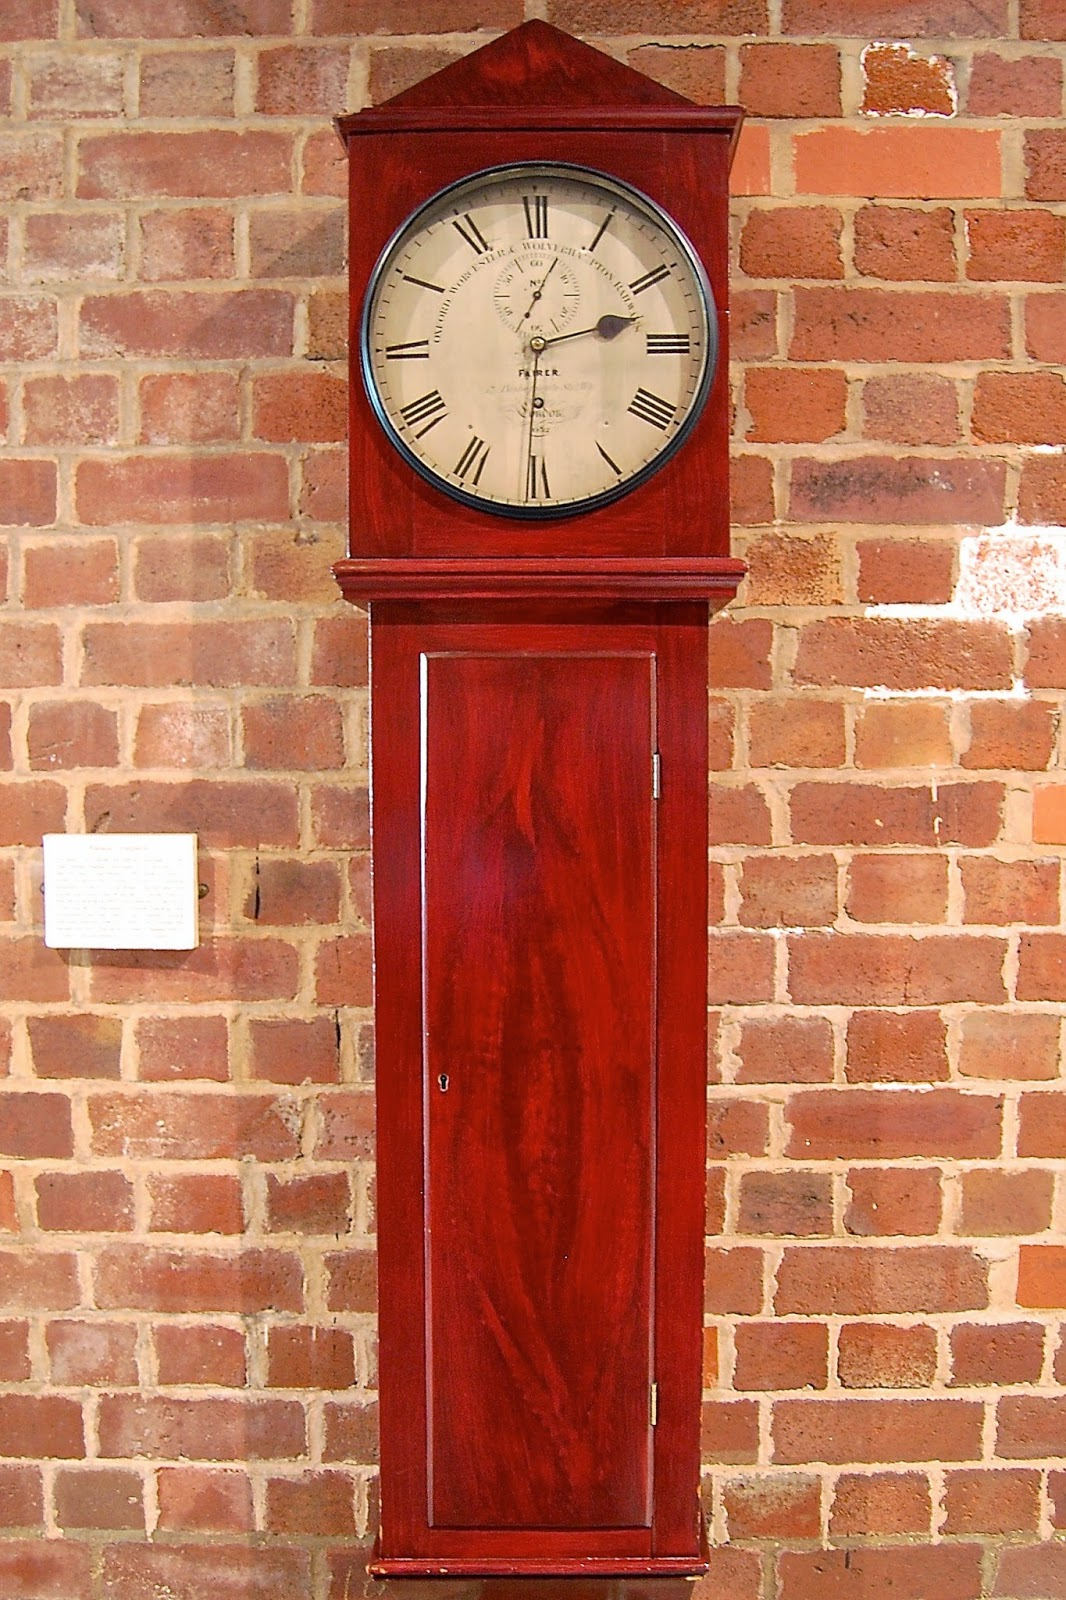 1850 clock used on the Great Western Railway for more than 100 years